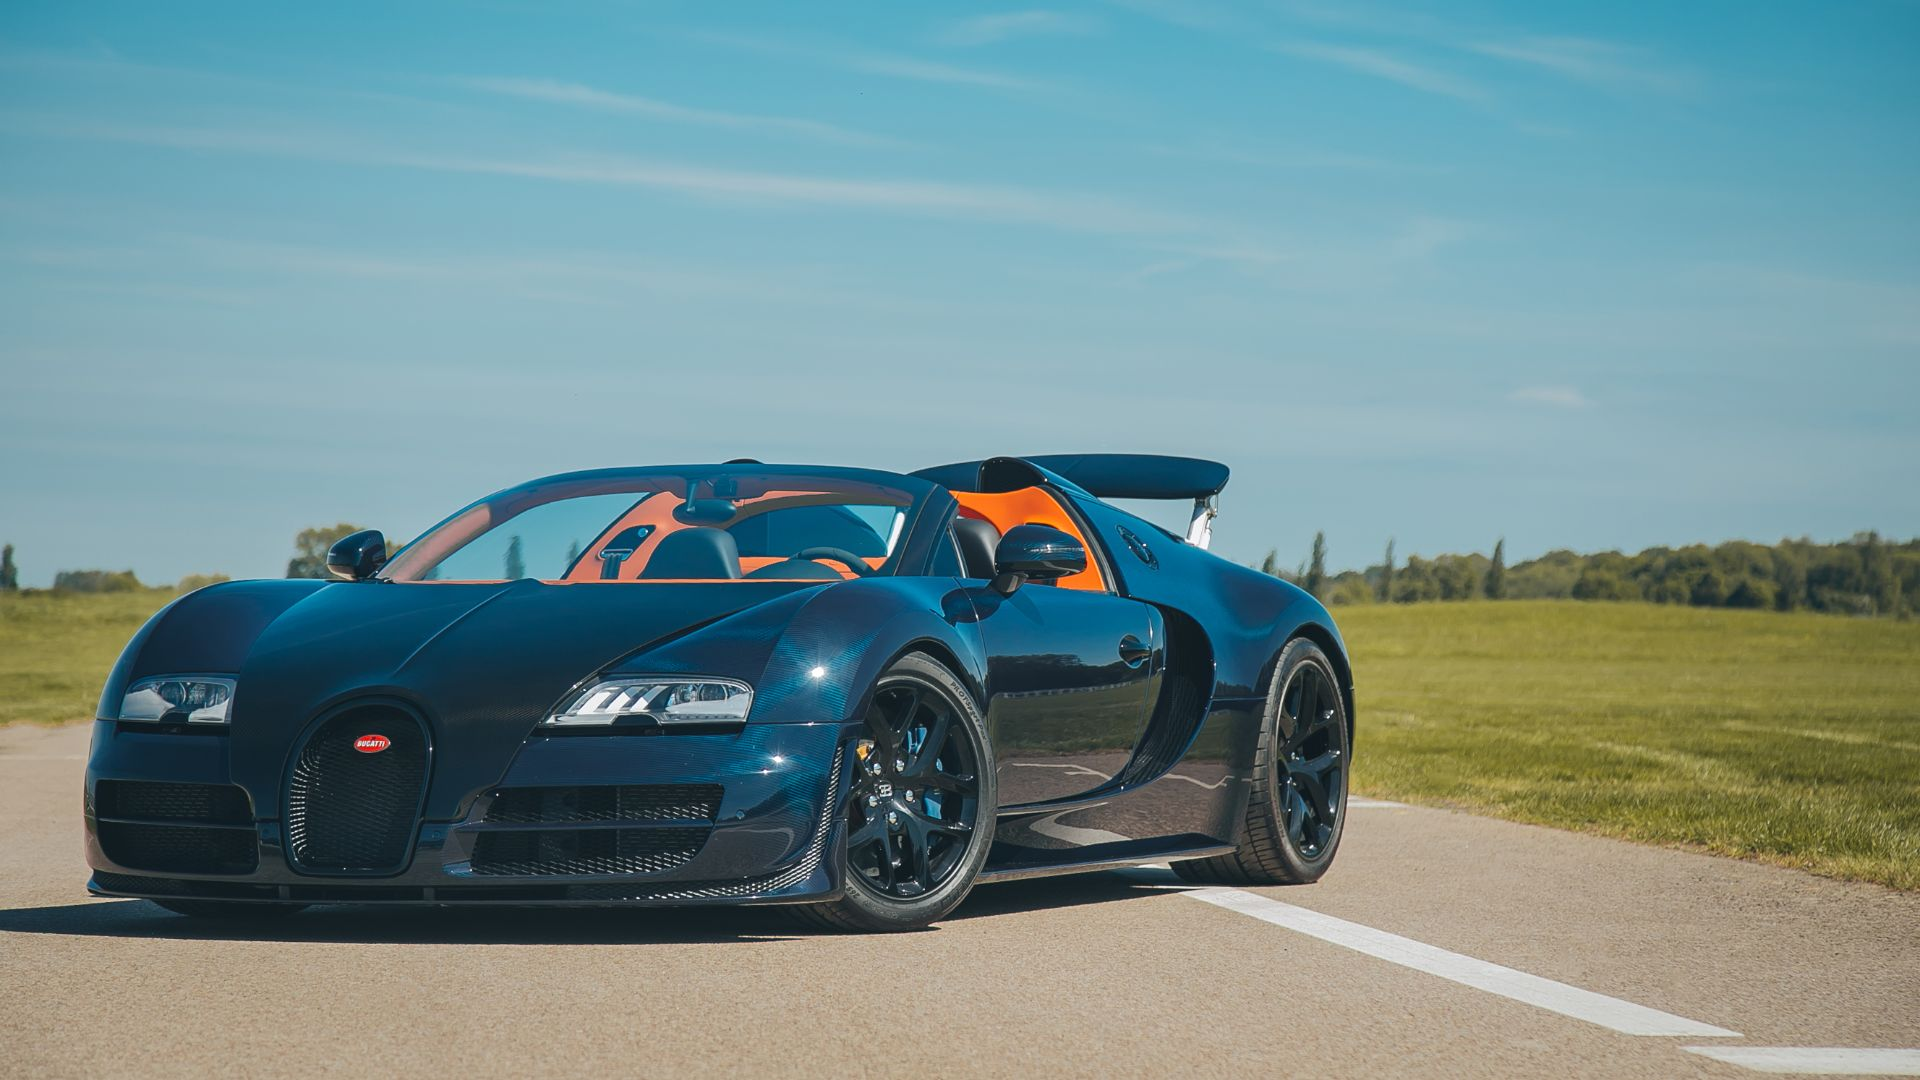 Most expensive car add-ons